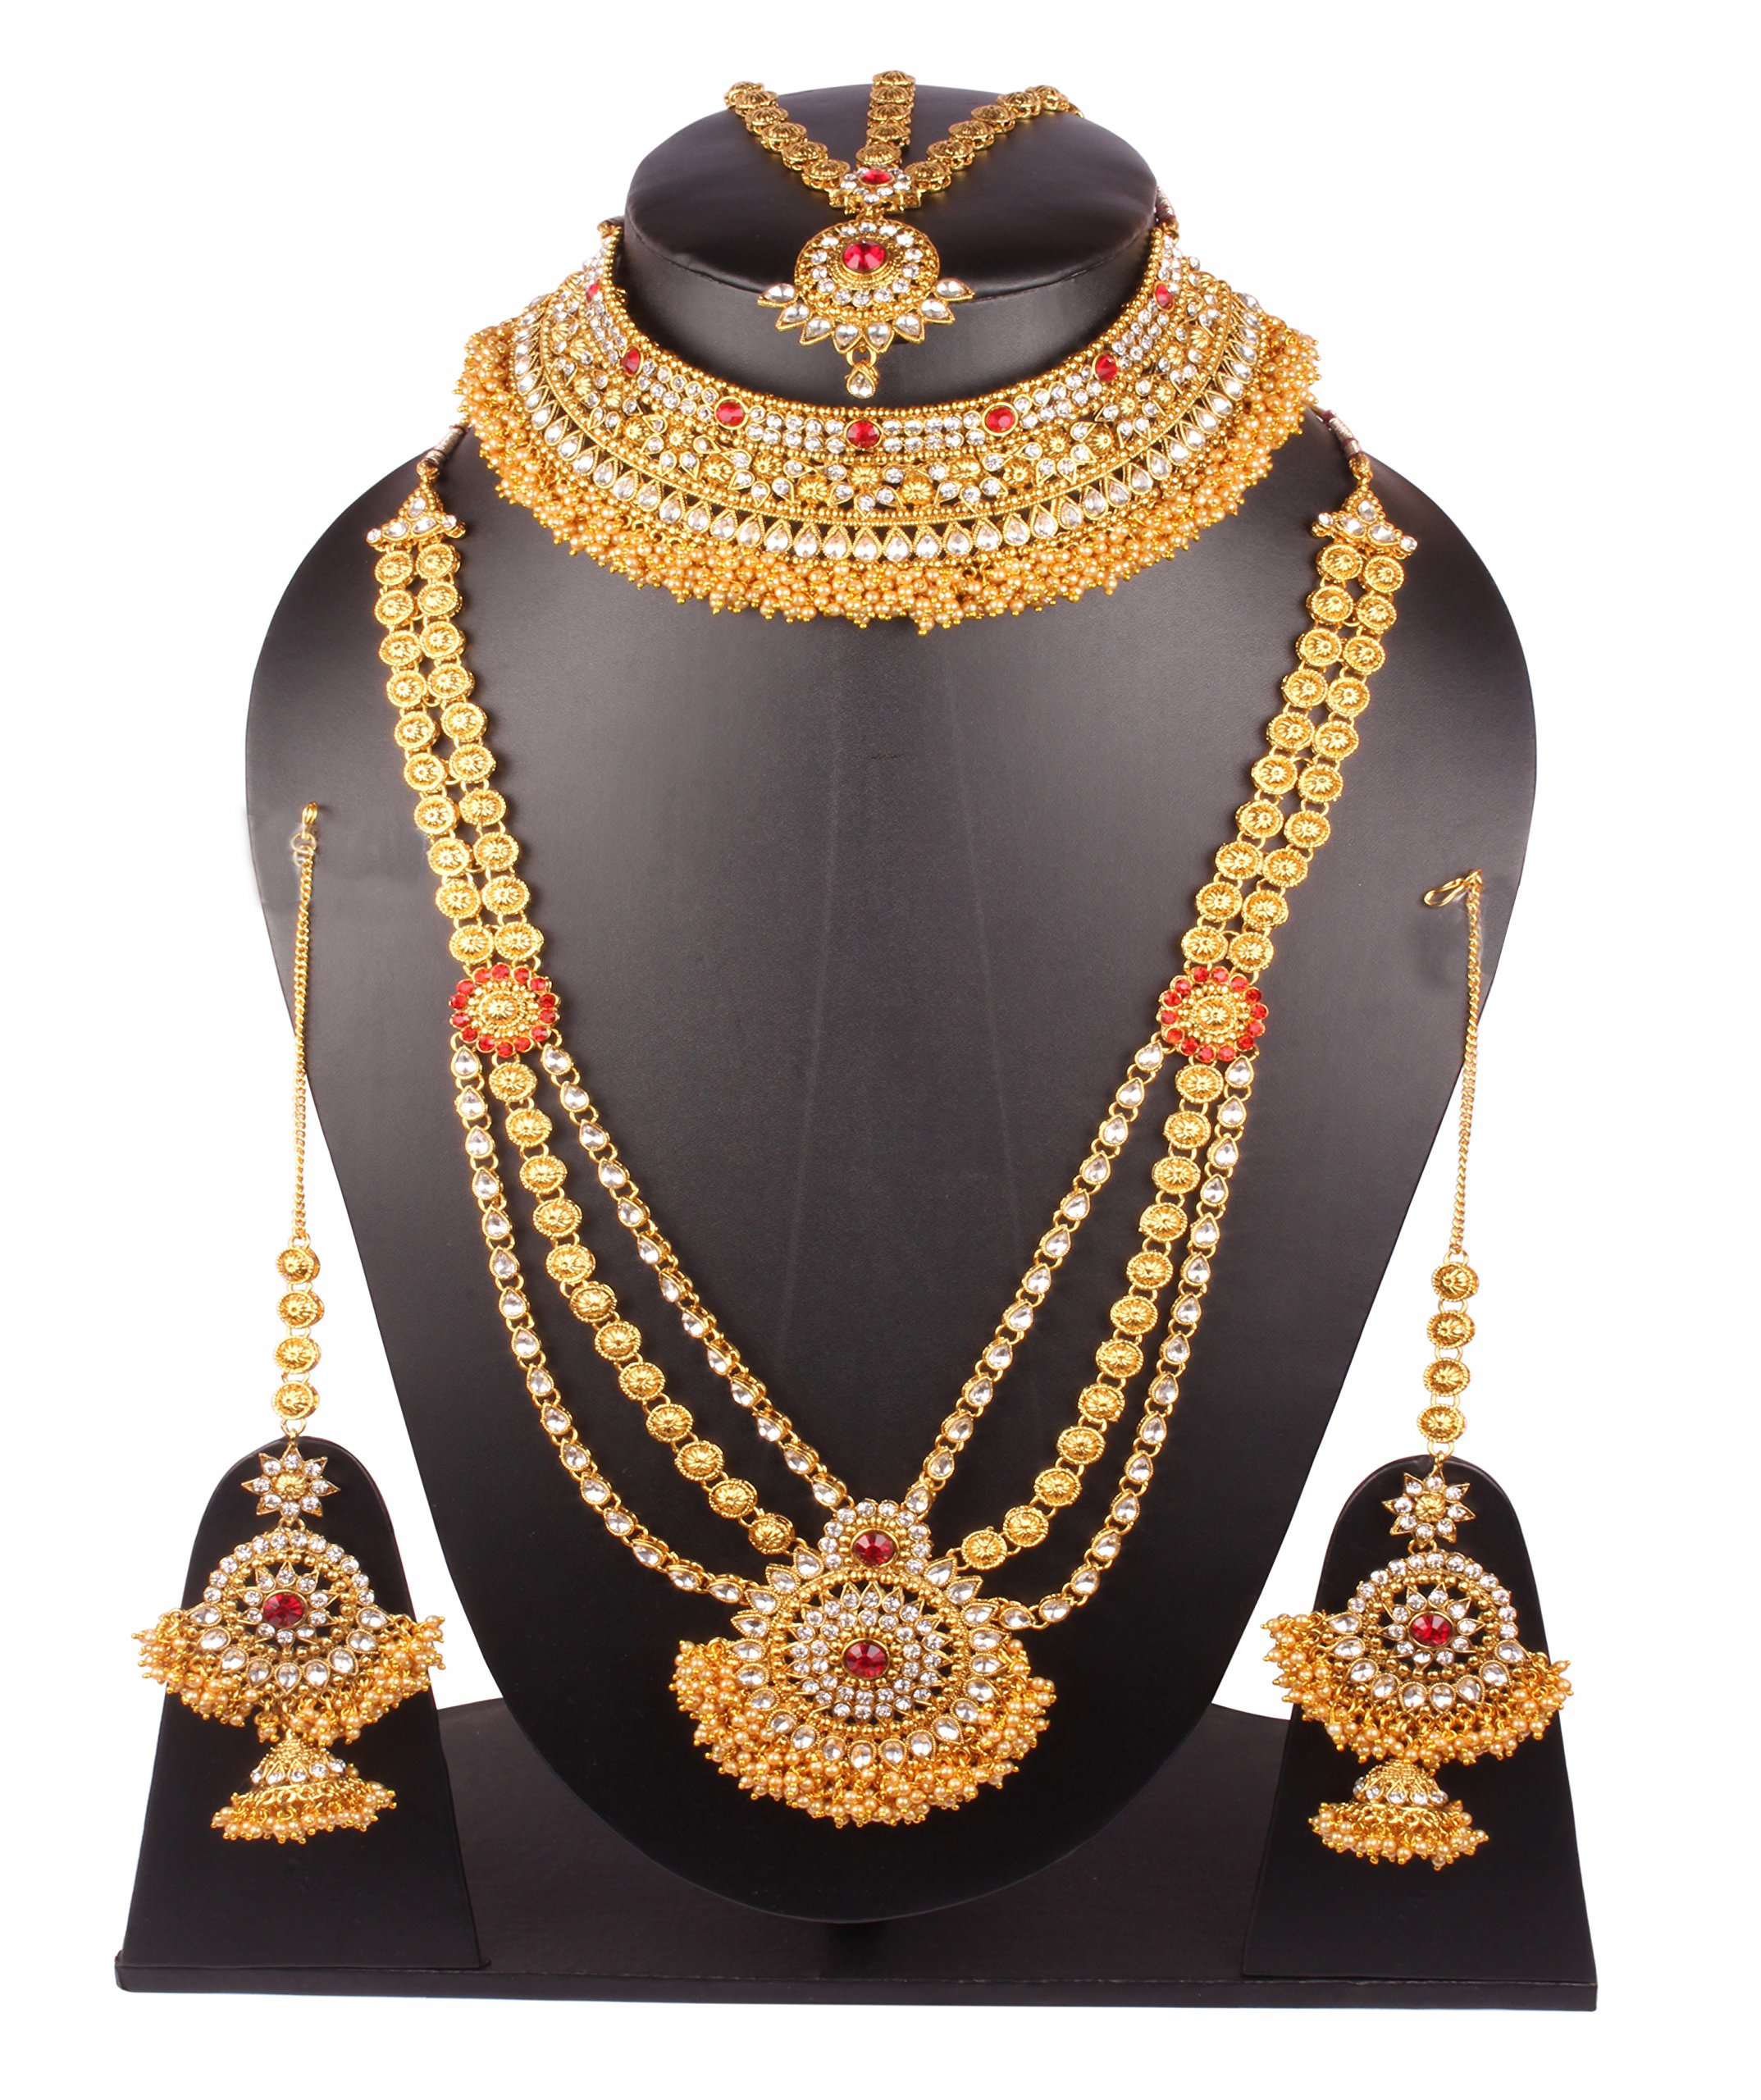 Traditional Bollywood Style Gold Plated Indian Necklace Earrings Bridal Set Jewelry